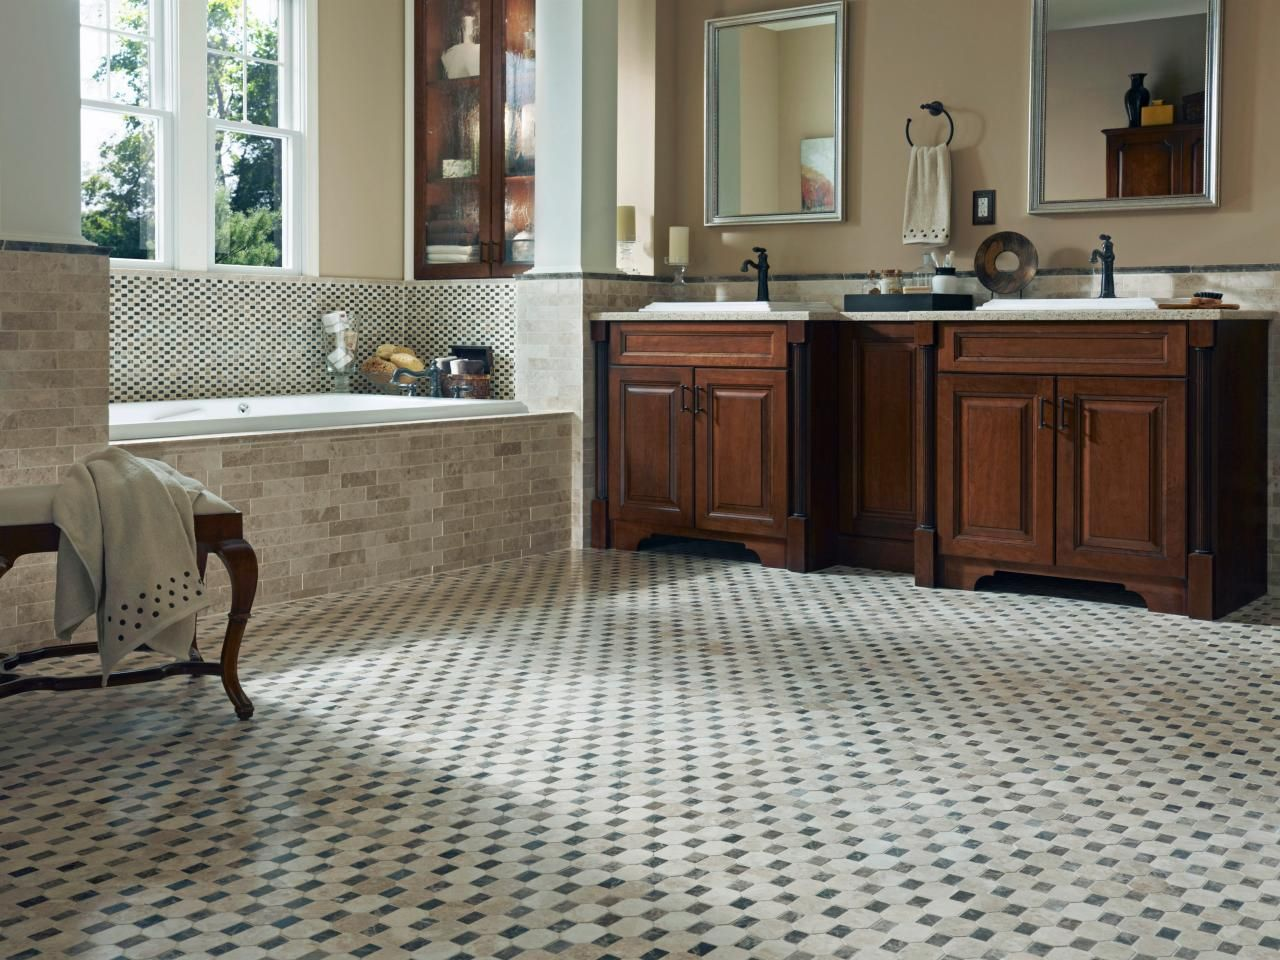 Tile flooring options tile tub surround tub surround and wood vanity all about tile flooring choosing the best type dailygadgetfo Gallery